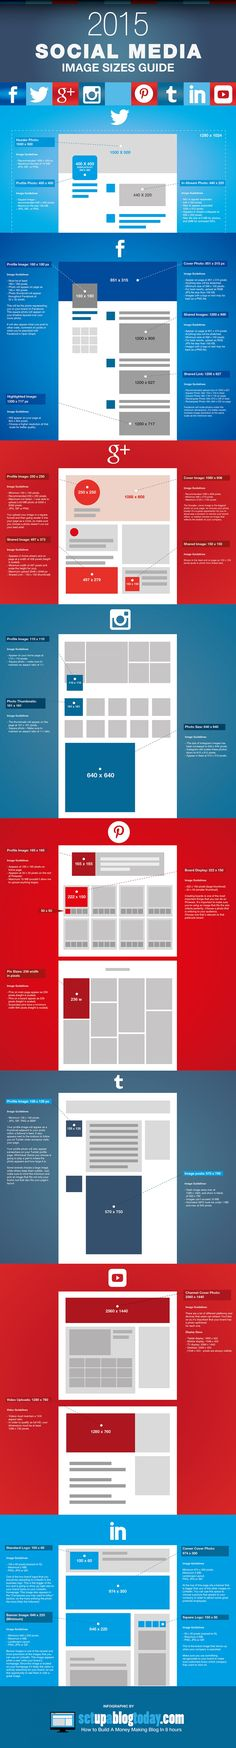 Social Media Image Size Cheat Sheet 2015 Infographic